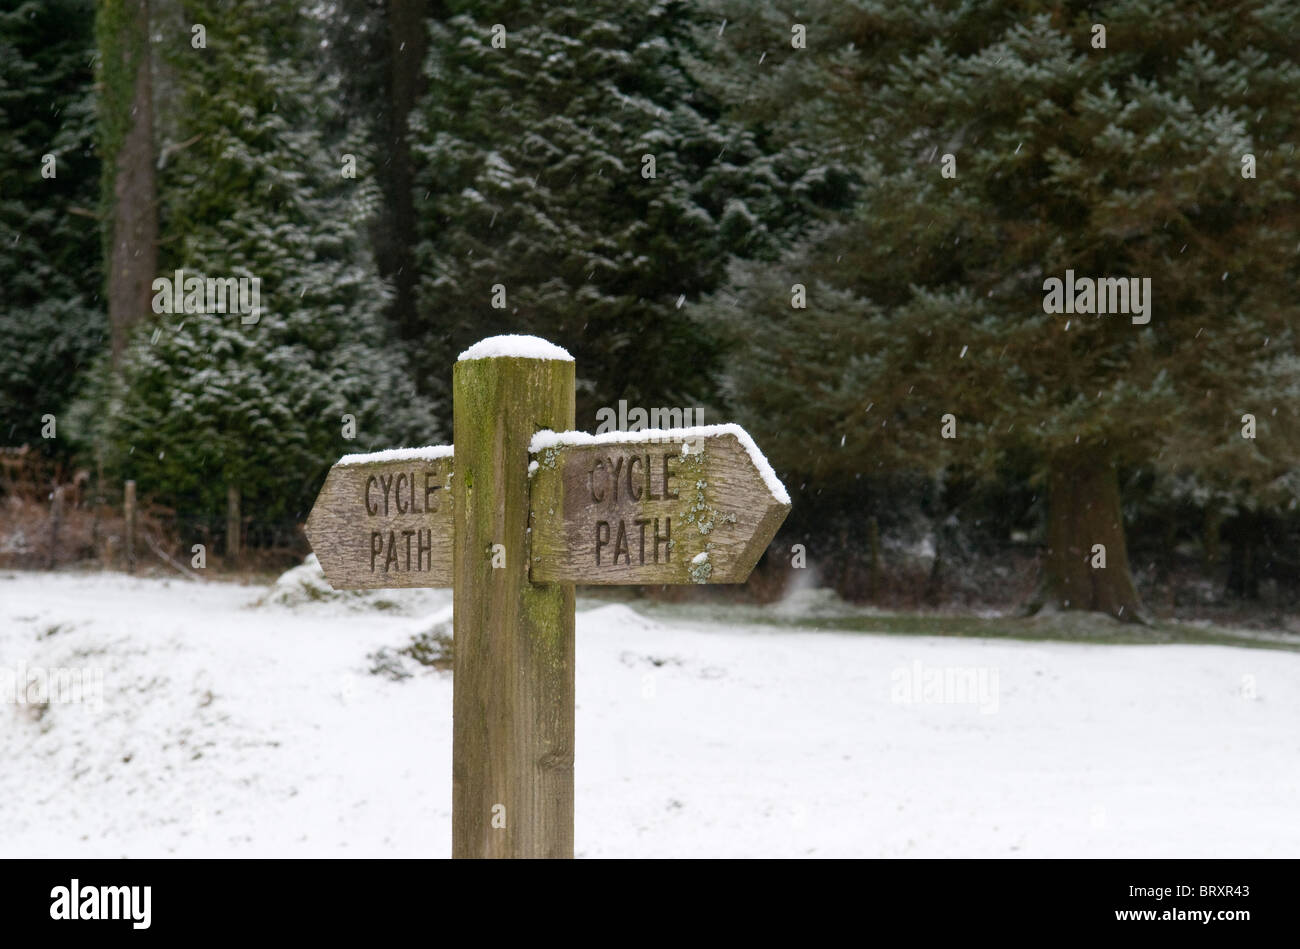 Wooden cycle path direction sign in snow, Dartmoor, Devon UK - Stock Image